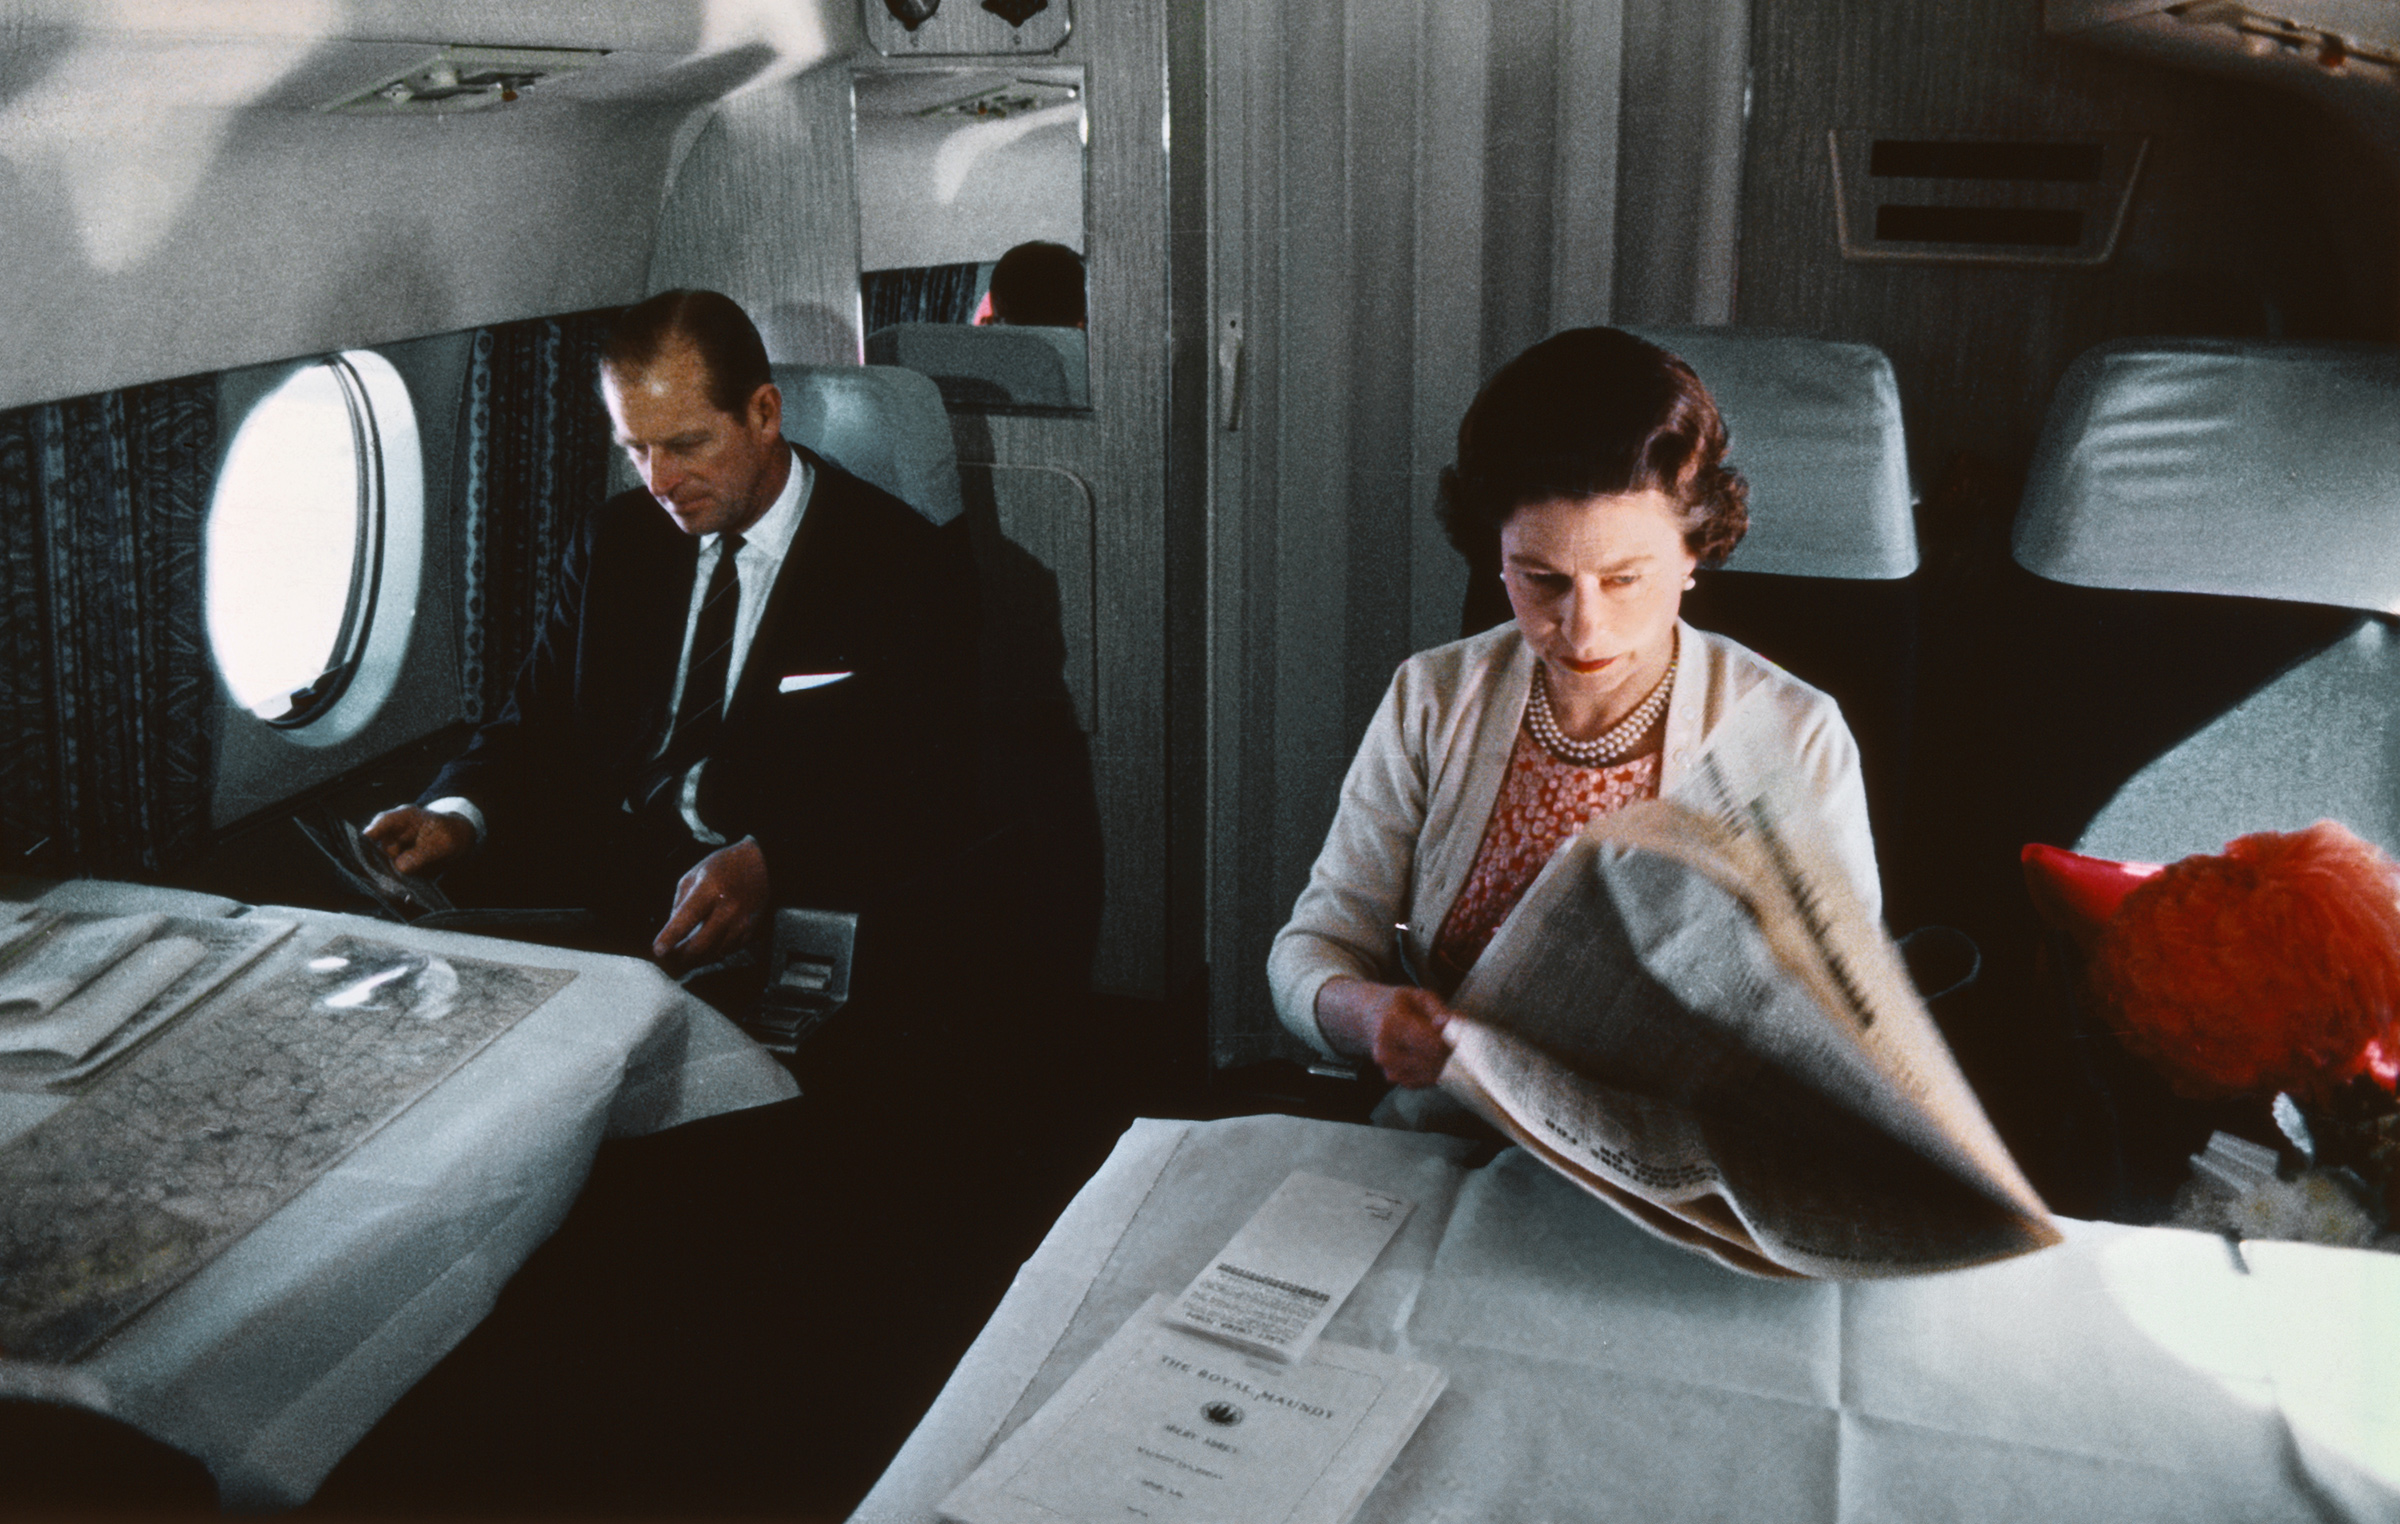 Queen Elizabeth II and Prince Philip fly back from a visit to Yorkshire in an Andover of the Queen's Flight, in a photo taken during the filming of the joint ITV-BBC film documentary The Royal Family, in 1969.